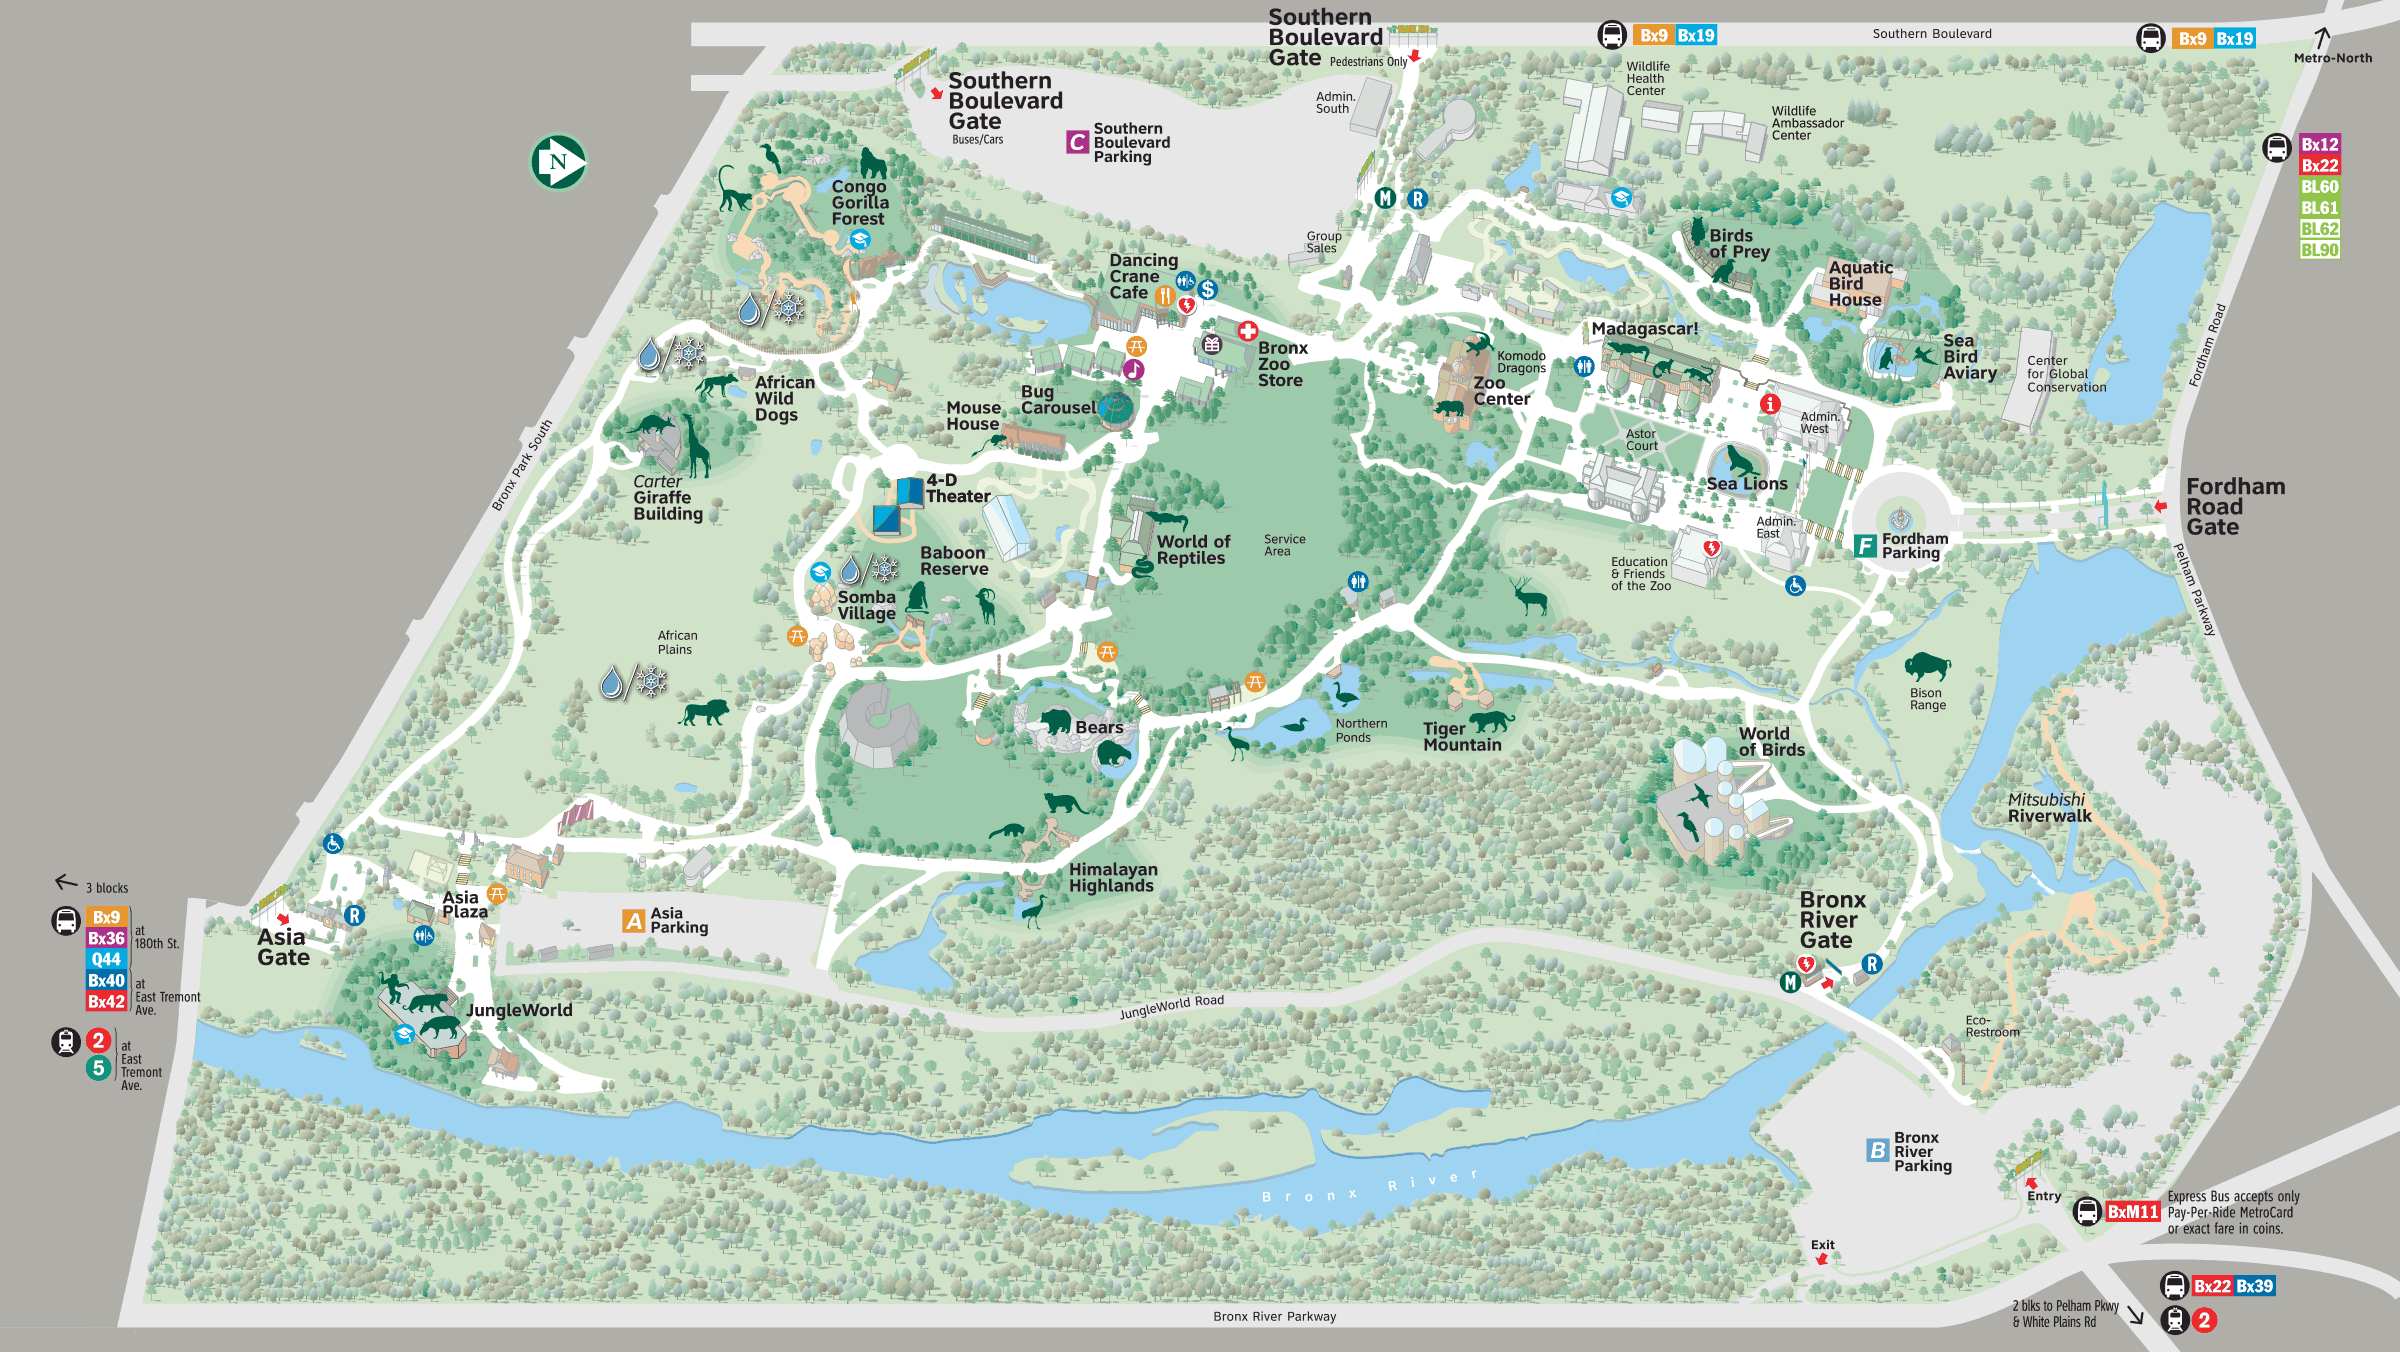 Map - Bronx Zoo | Places to Visit with the kids | Bronx zoo ... Map Bronx Zoo on ny aquarium map, south bronx map, brooklyn map, mta bronx bus route map, subway map, arthur avenue map, buffalo zoo ny map, prospect park map, american museum of natural history map, gun hill road map, zoo park map, wildlife safari map, arthur ave bronx ny map, bronx street map, woodlawn cemetery bronx map, manhattanhenge map, new york map, the bronx map, virginia zoological park map, central park map,